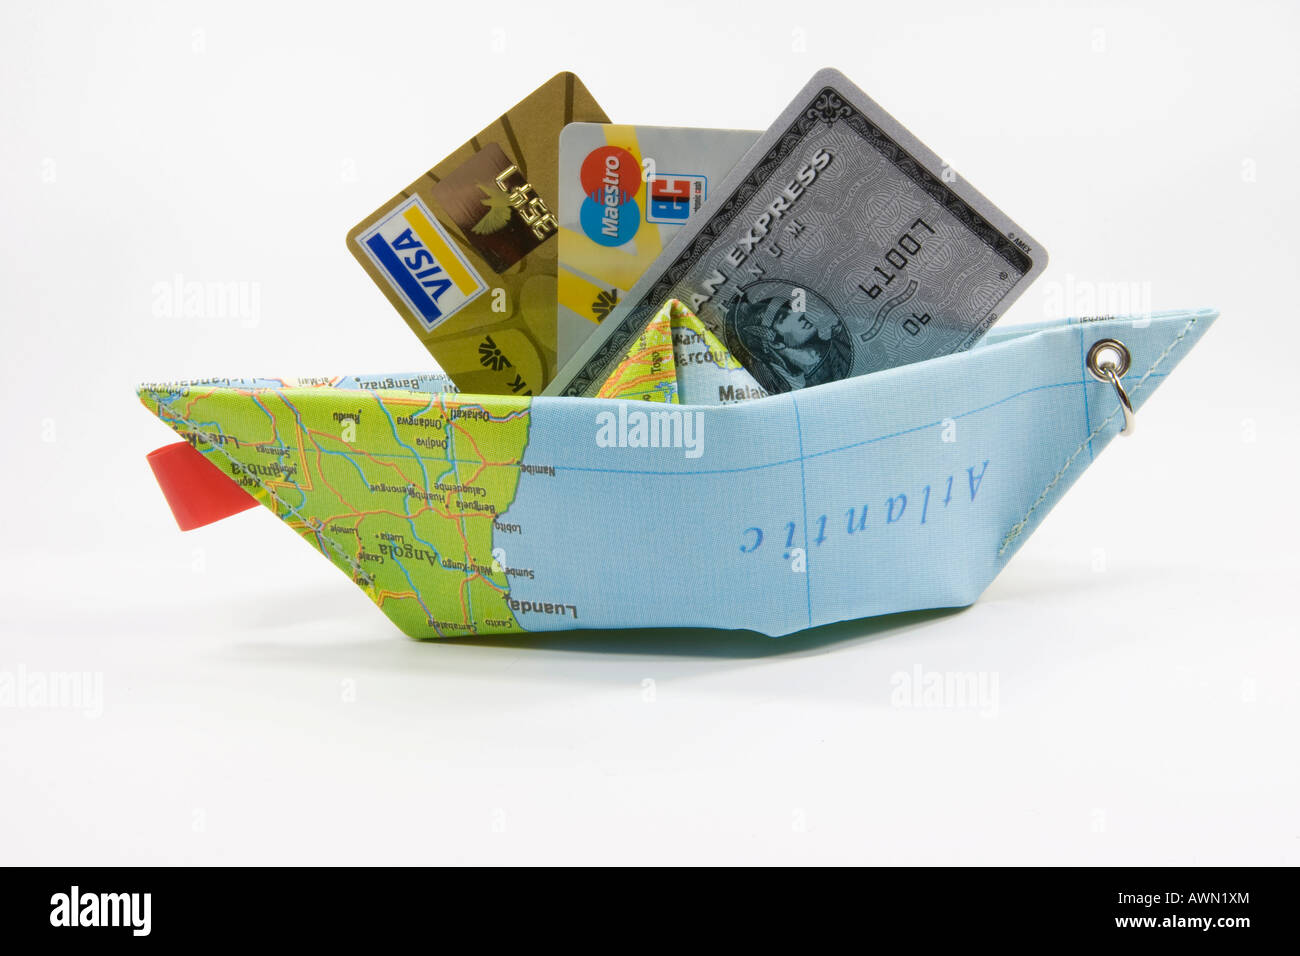 Credit cards and a paper ship made from a map: symbol for payment methods while travelling Stock Photo